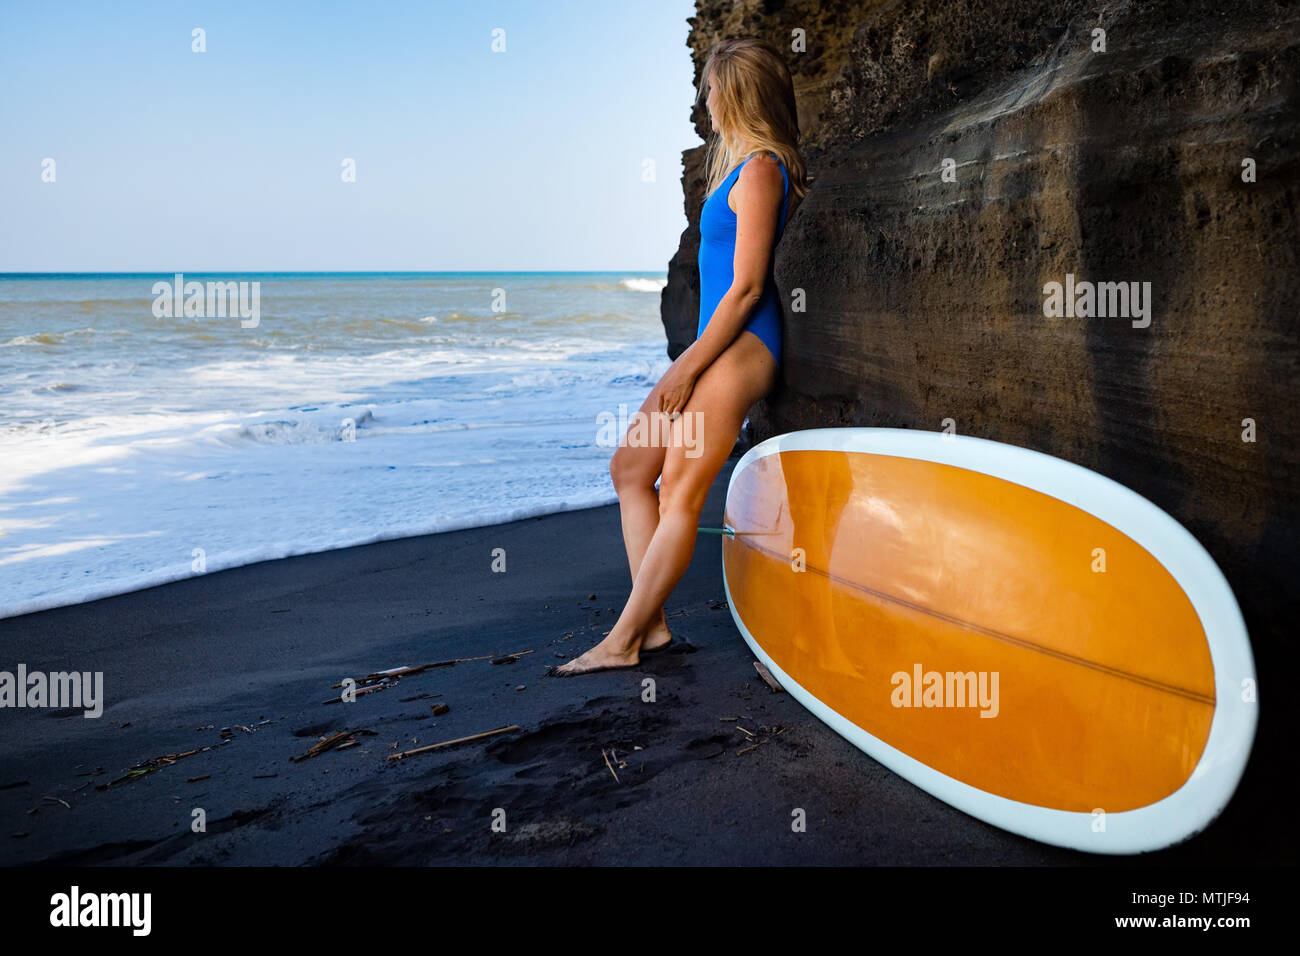 Girl in bikini with surfboard stand by cliff on black sand beach. Surfer woman look at sea surf and breaking waves. Active people in sport adventure - Stock Image